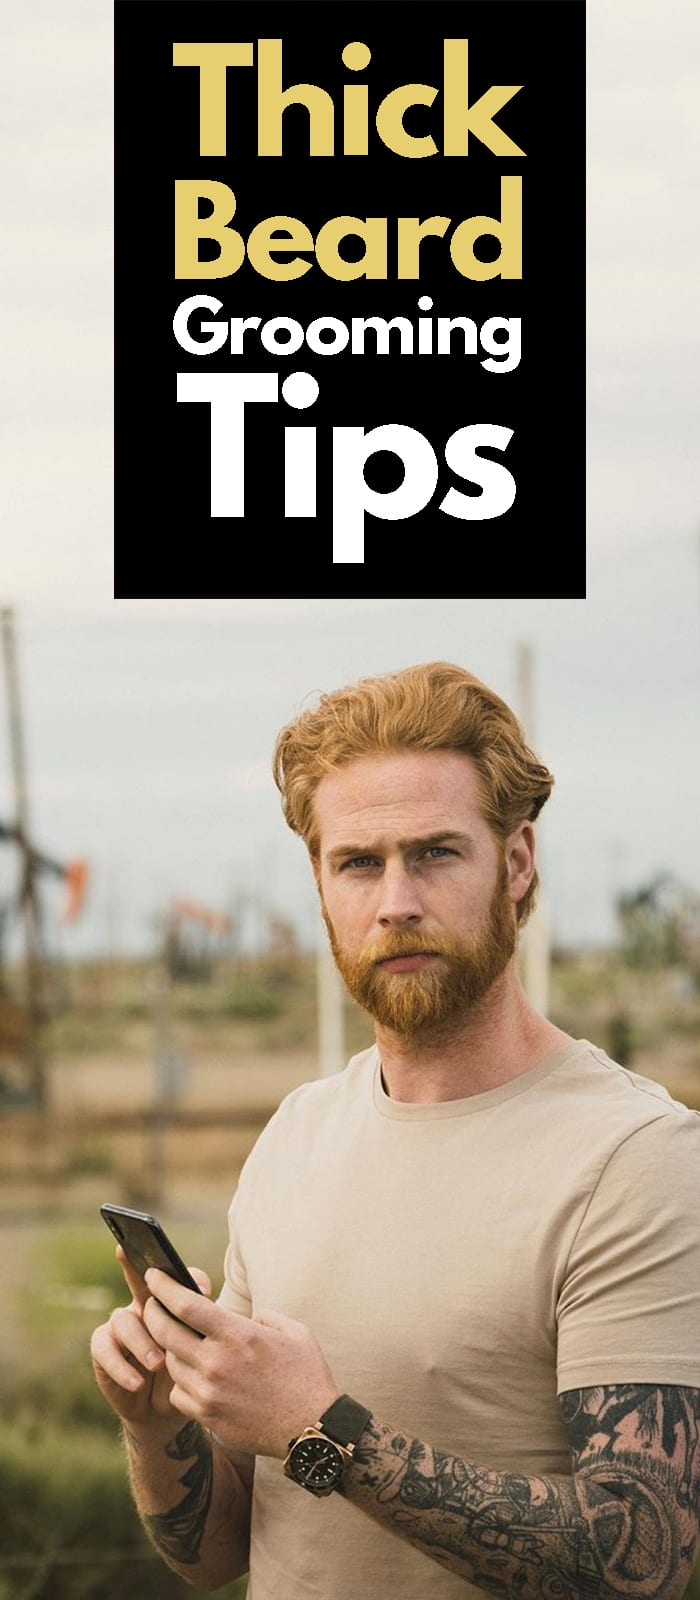 Thick Beard Grooming Tips!